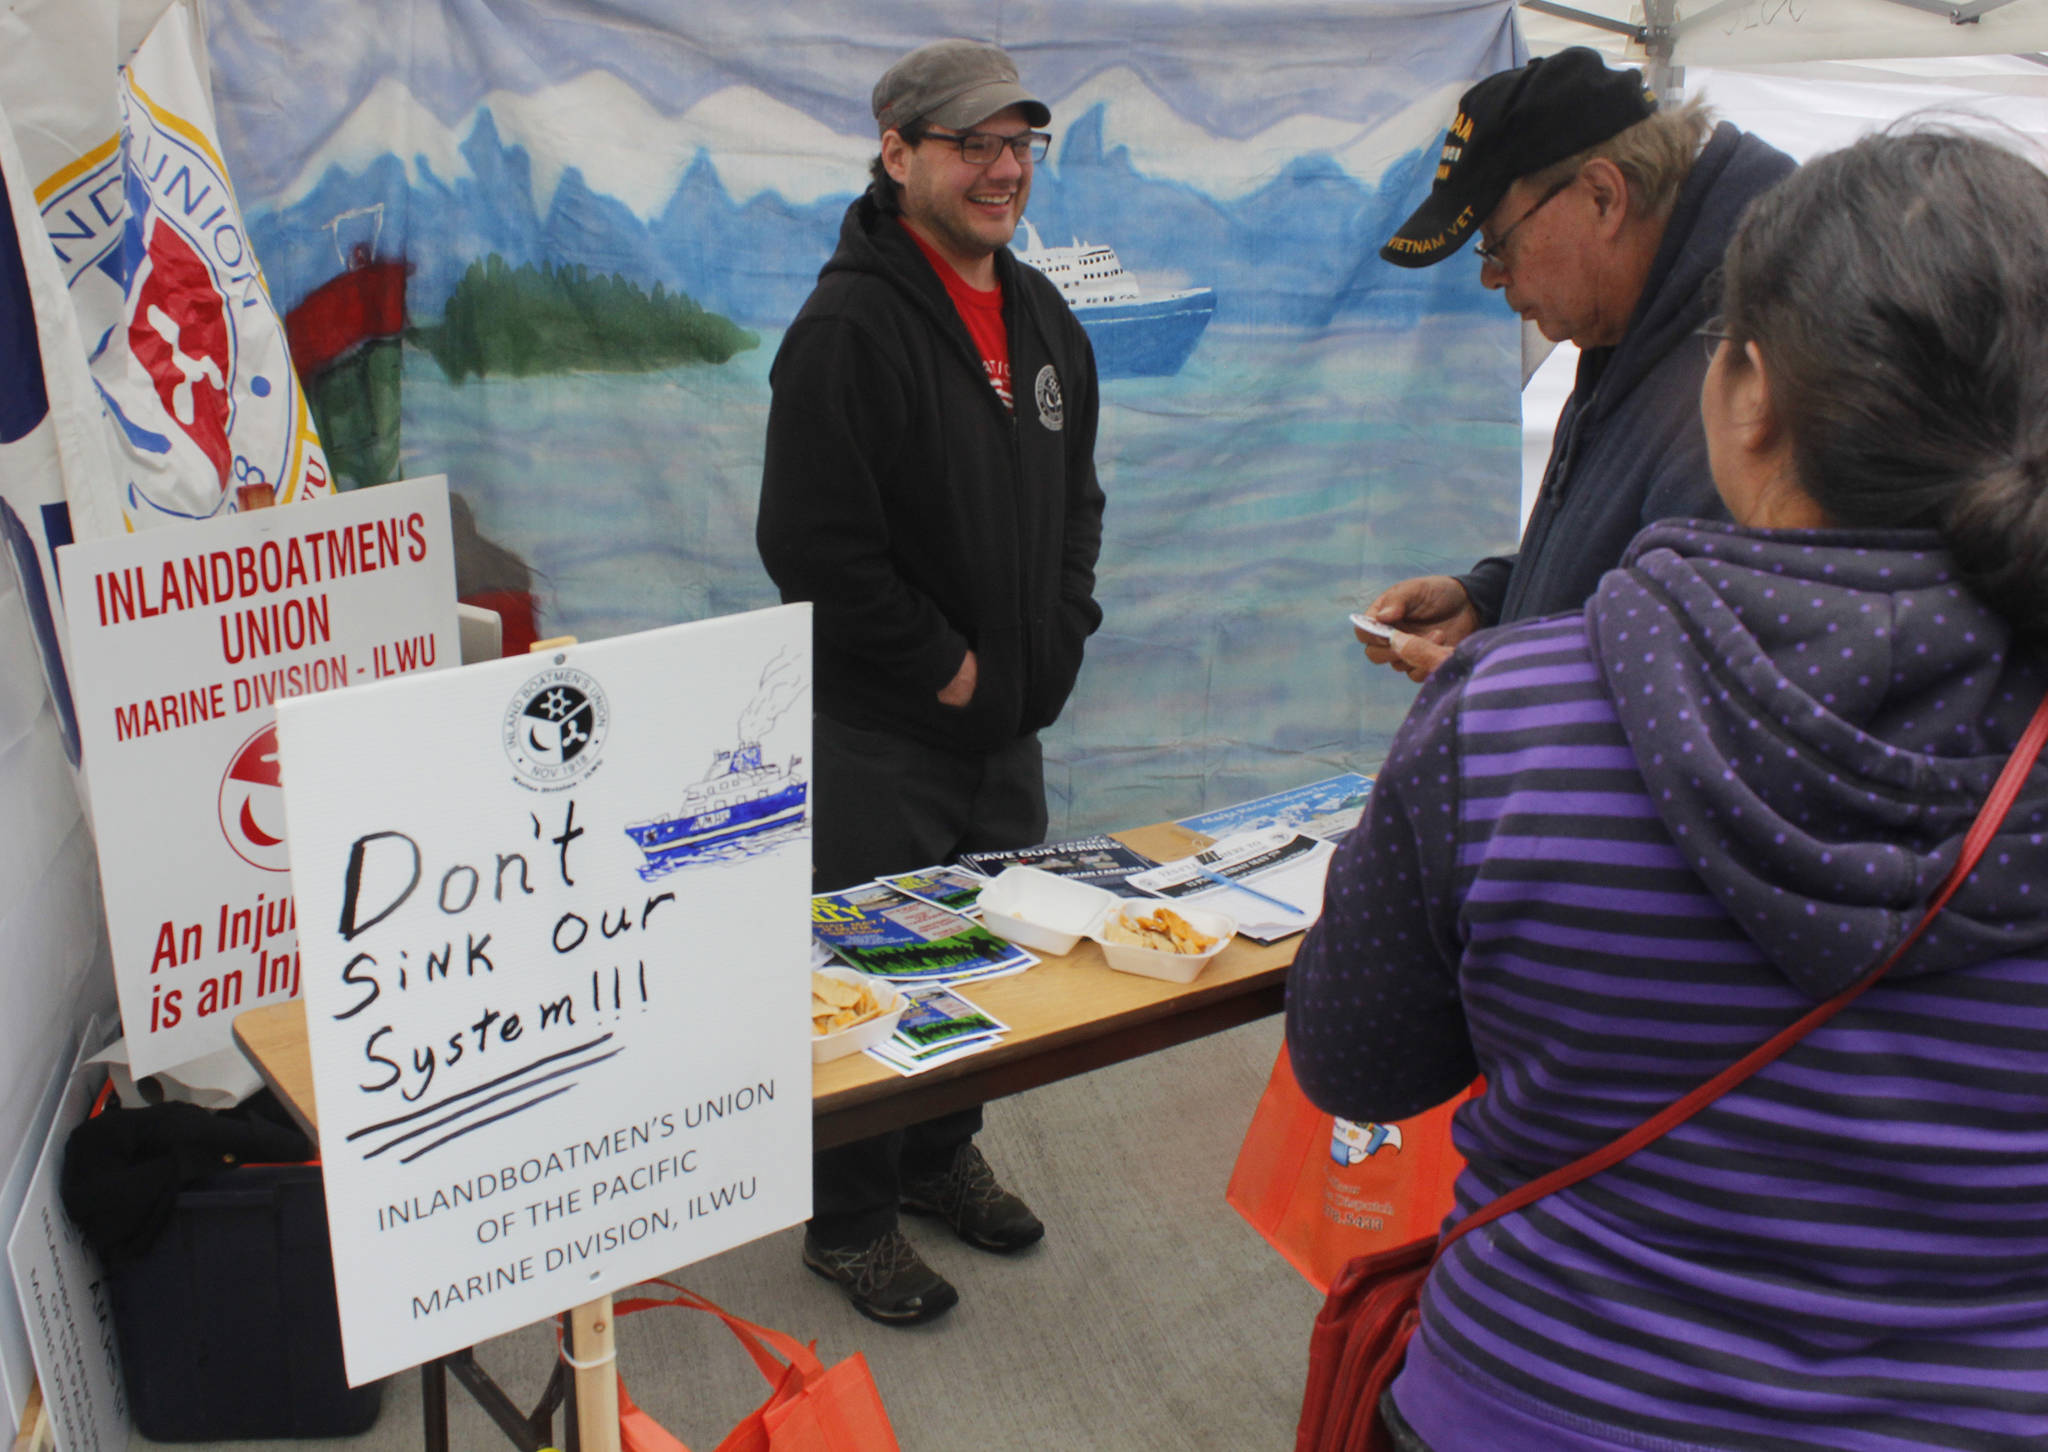 Anthony Distefano, a union steward for the Inlandboatmen's Union, talks to attendees at the Maritime Festival on Saturday, May 4, 2019. (Alex McCarthy | Juneau Empire)